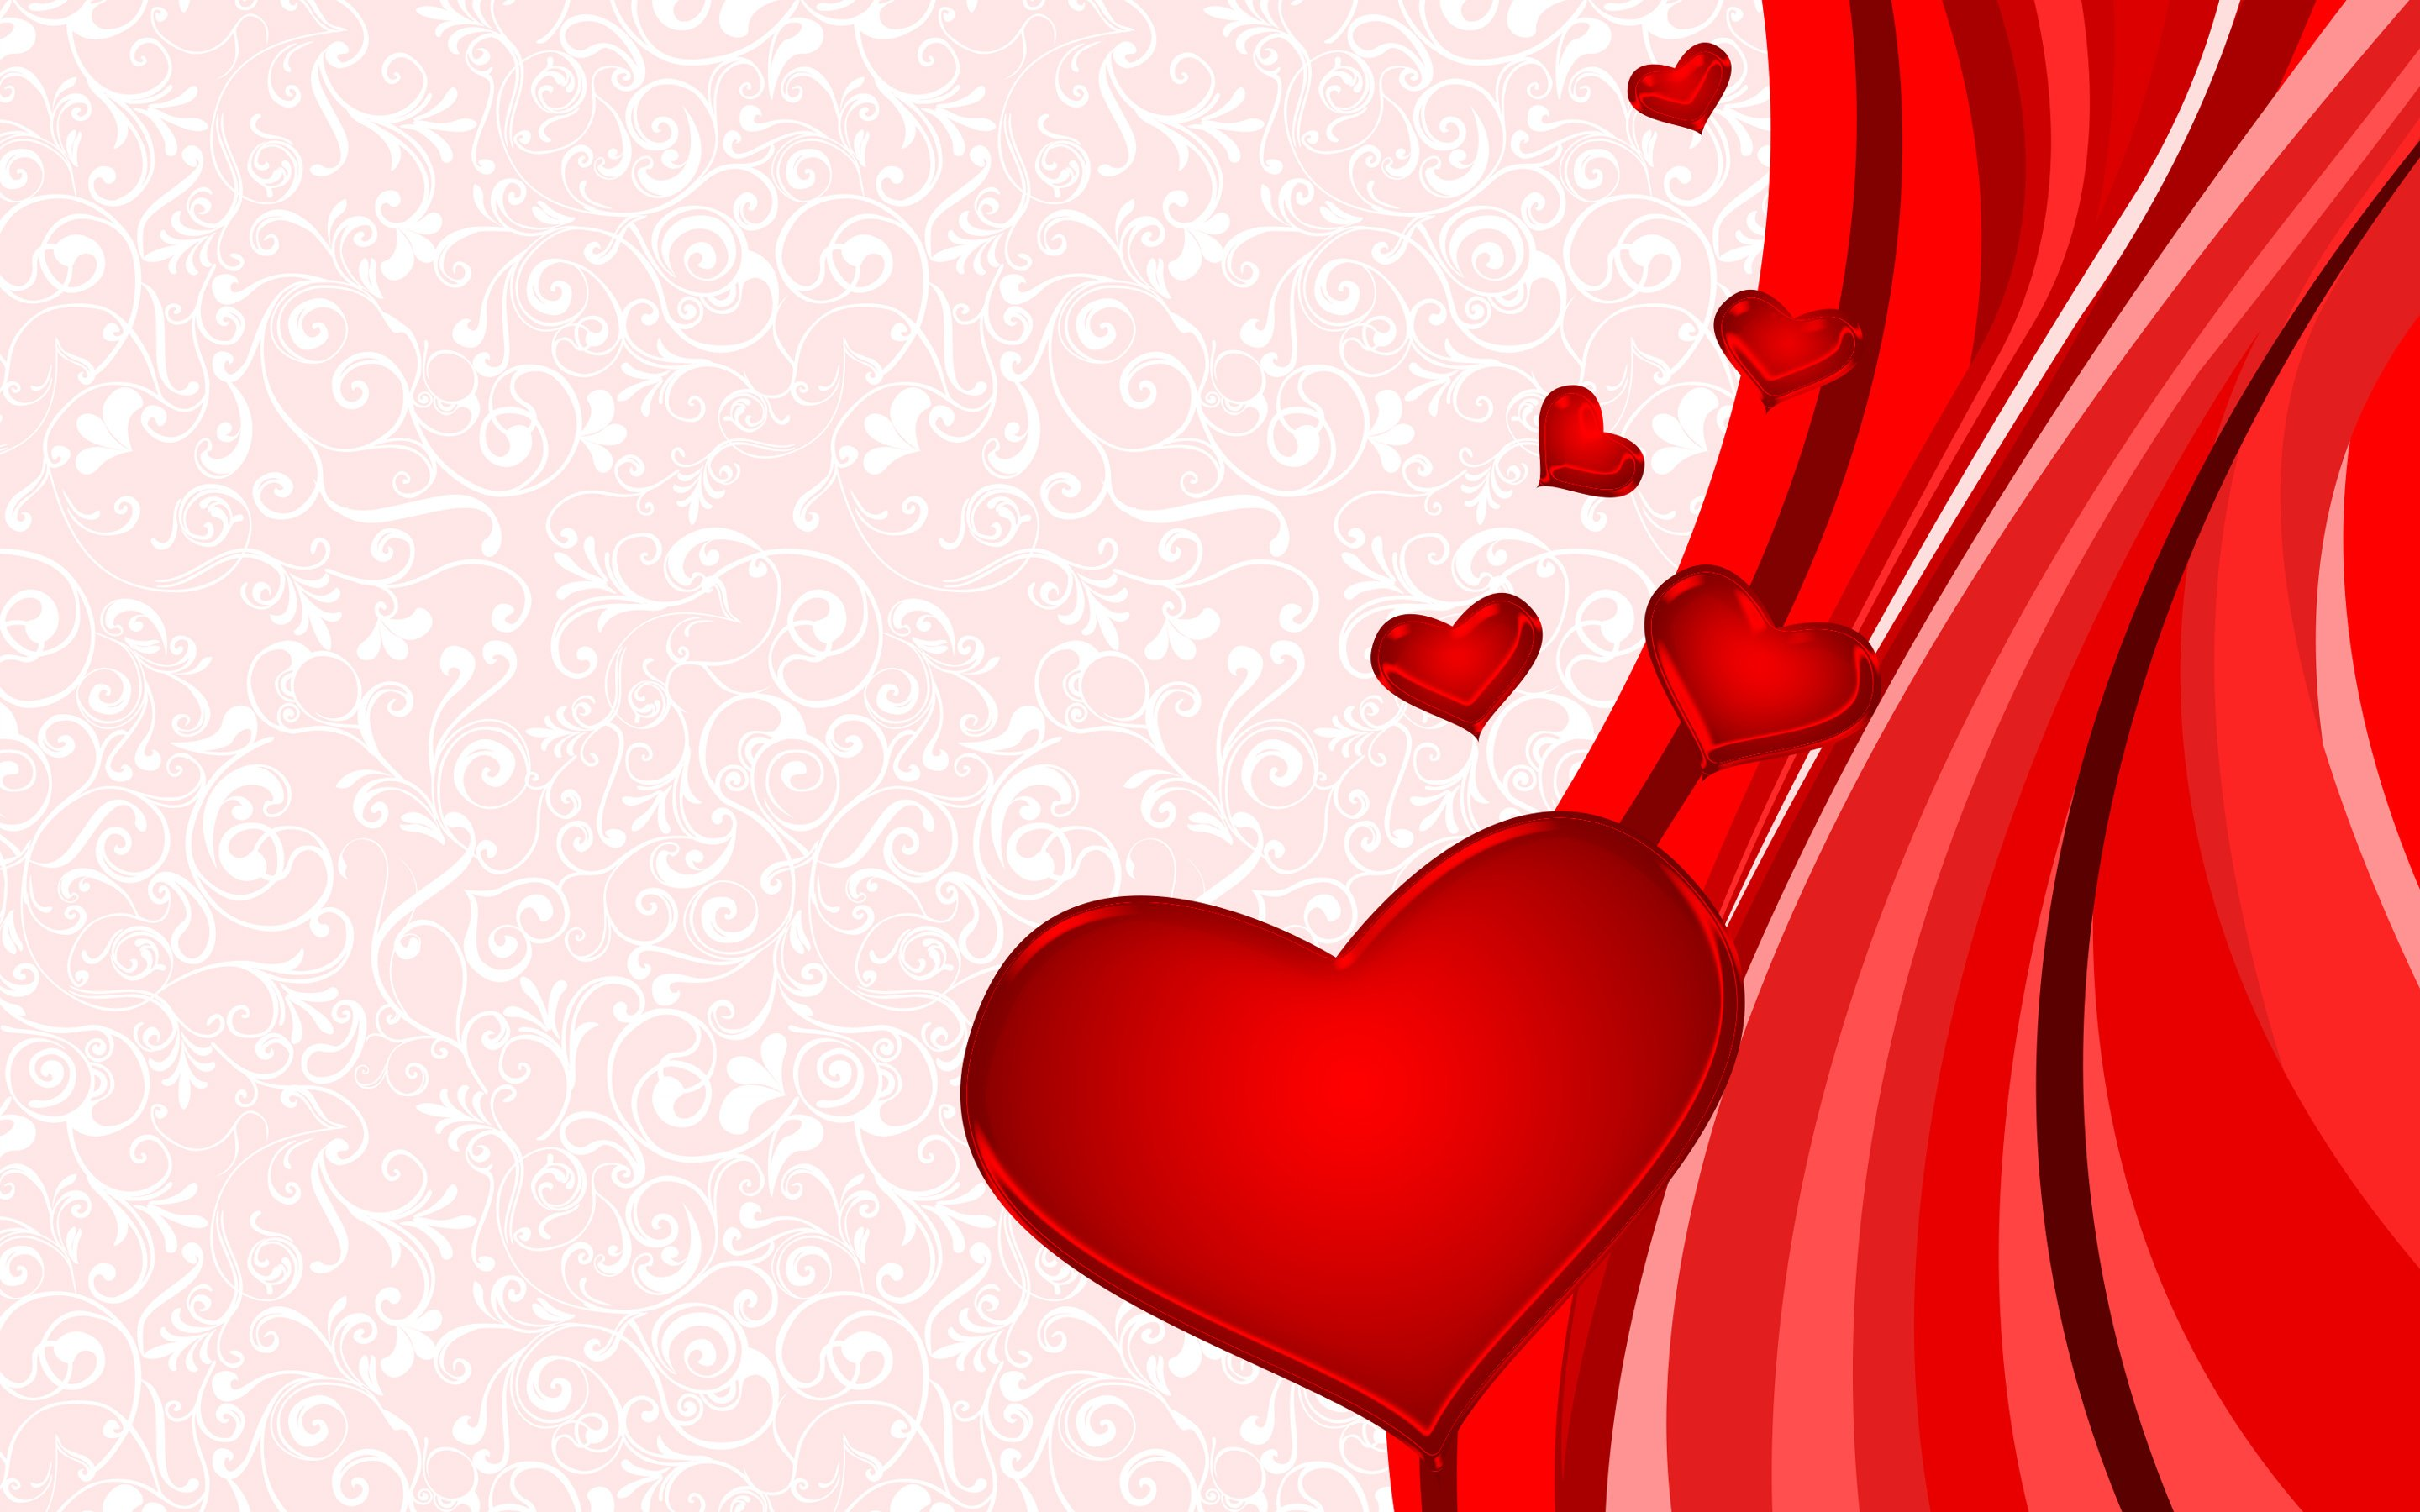 VALENTINES DAY Mood Love Holiday Valentine Heart Wallpaper | 2880x1800 |  617630 | WallpaperUP